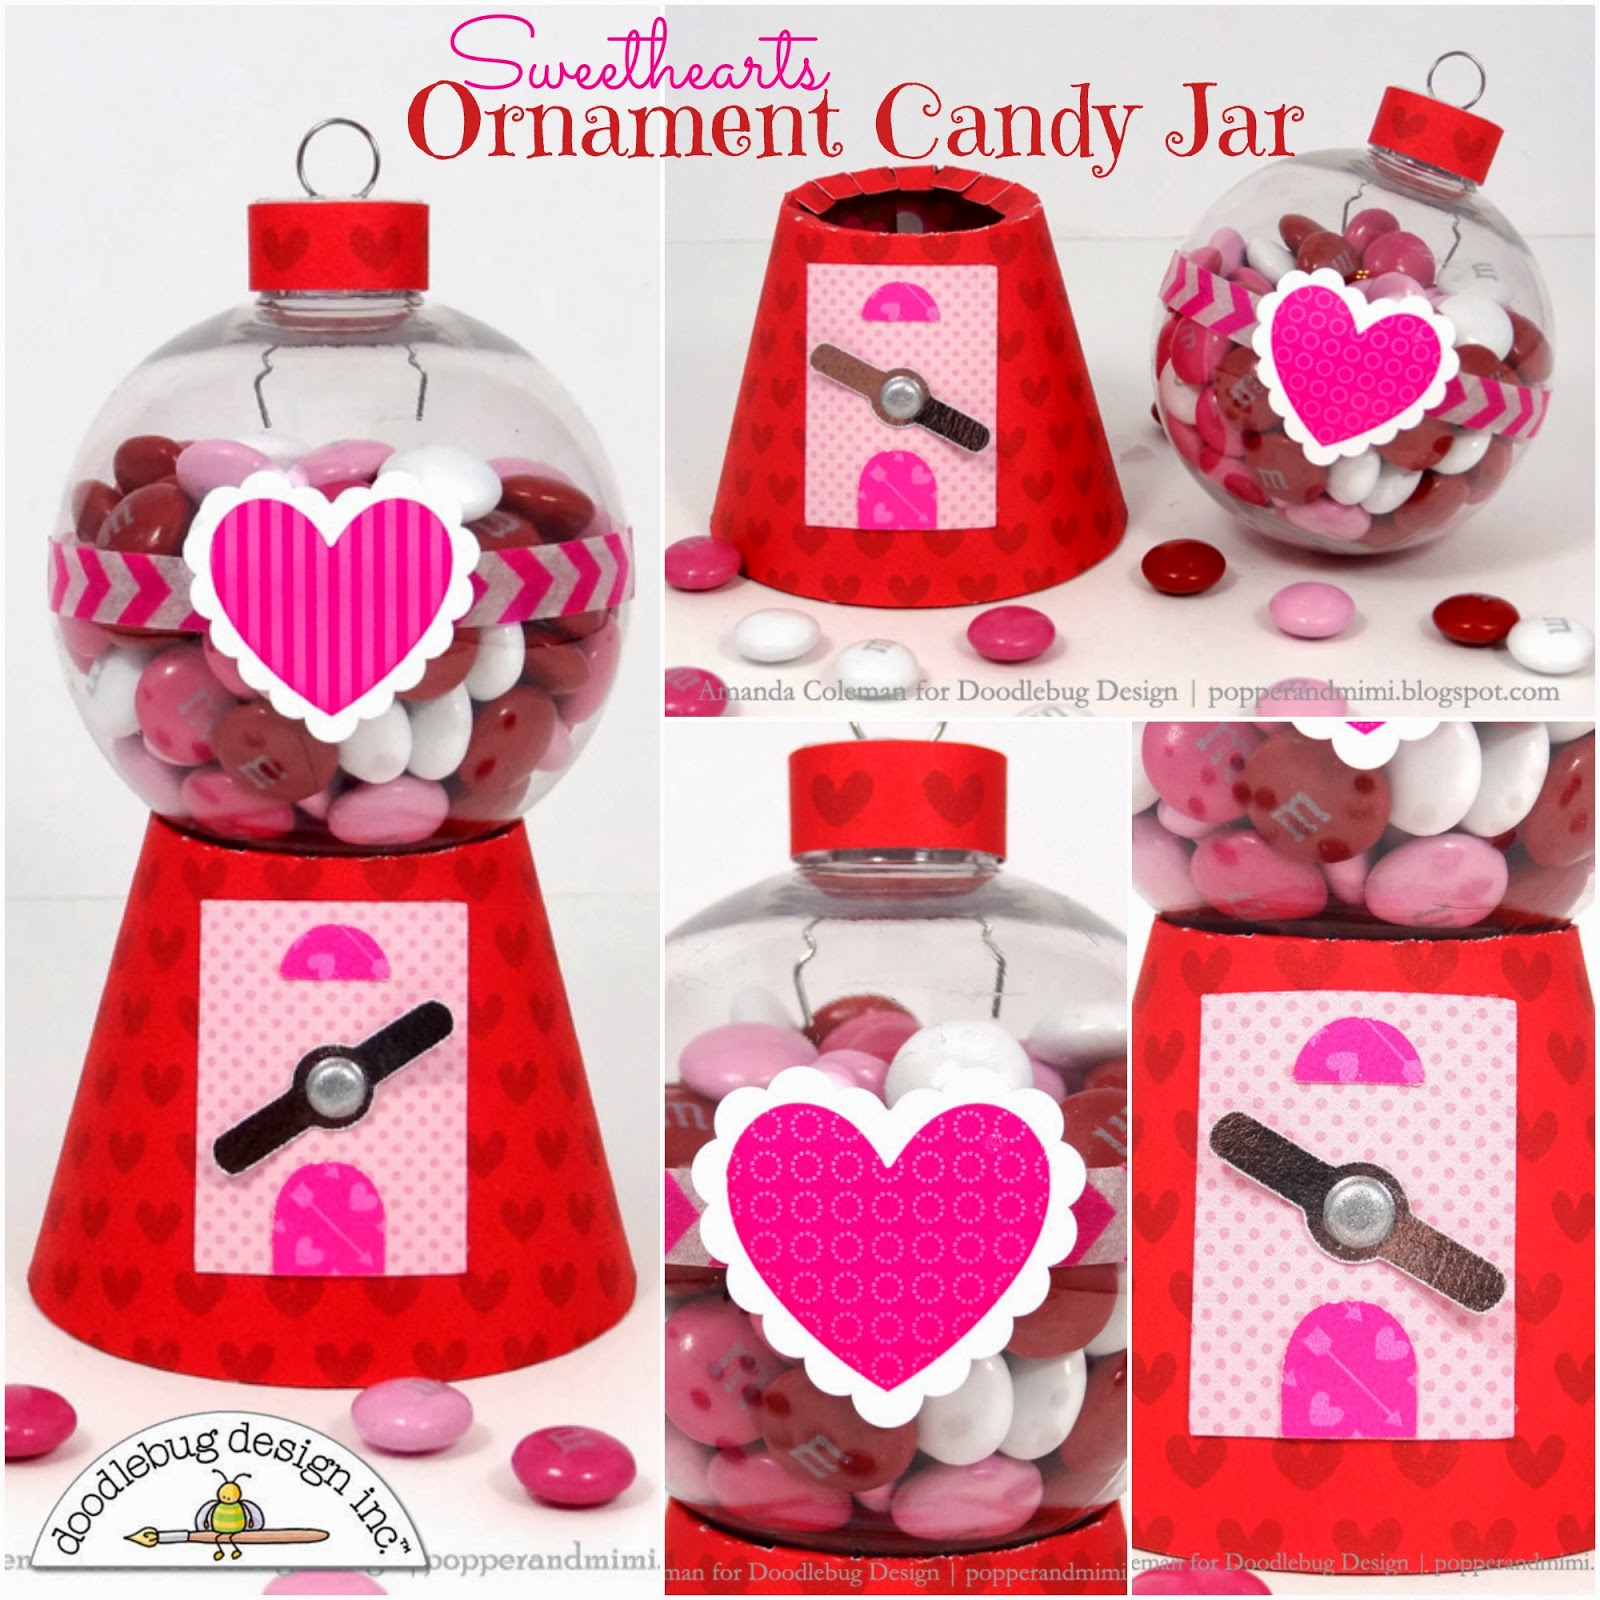 Doodlebug Design Inc Blog: Sweet Ornament Candy Jar by Amanda